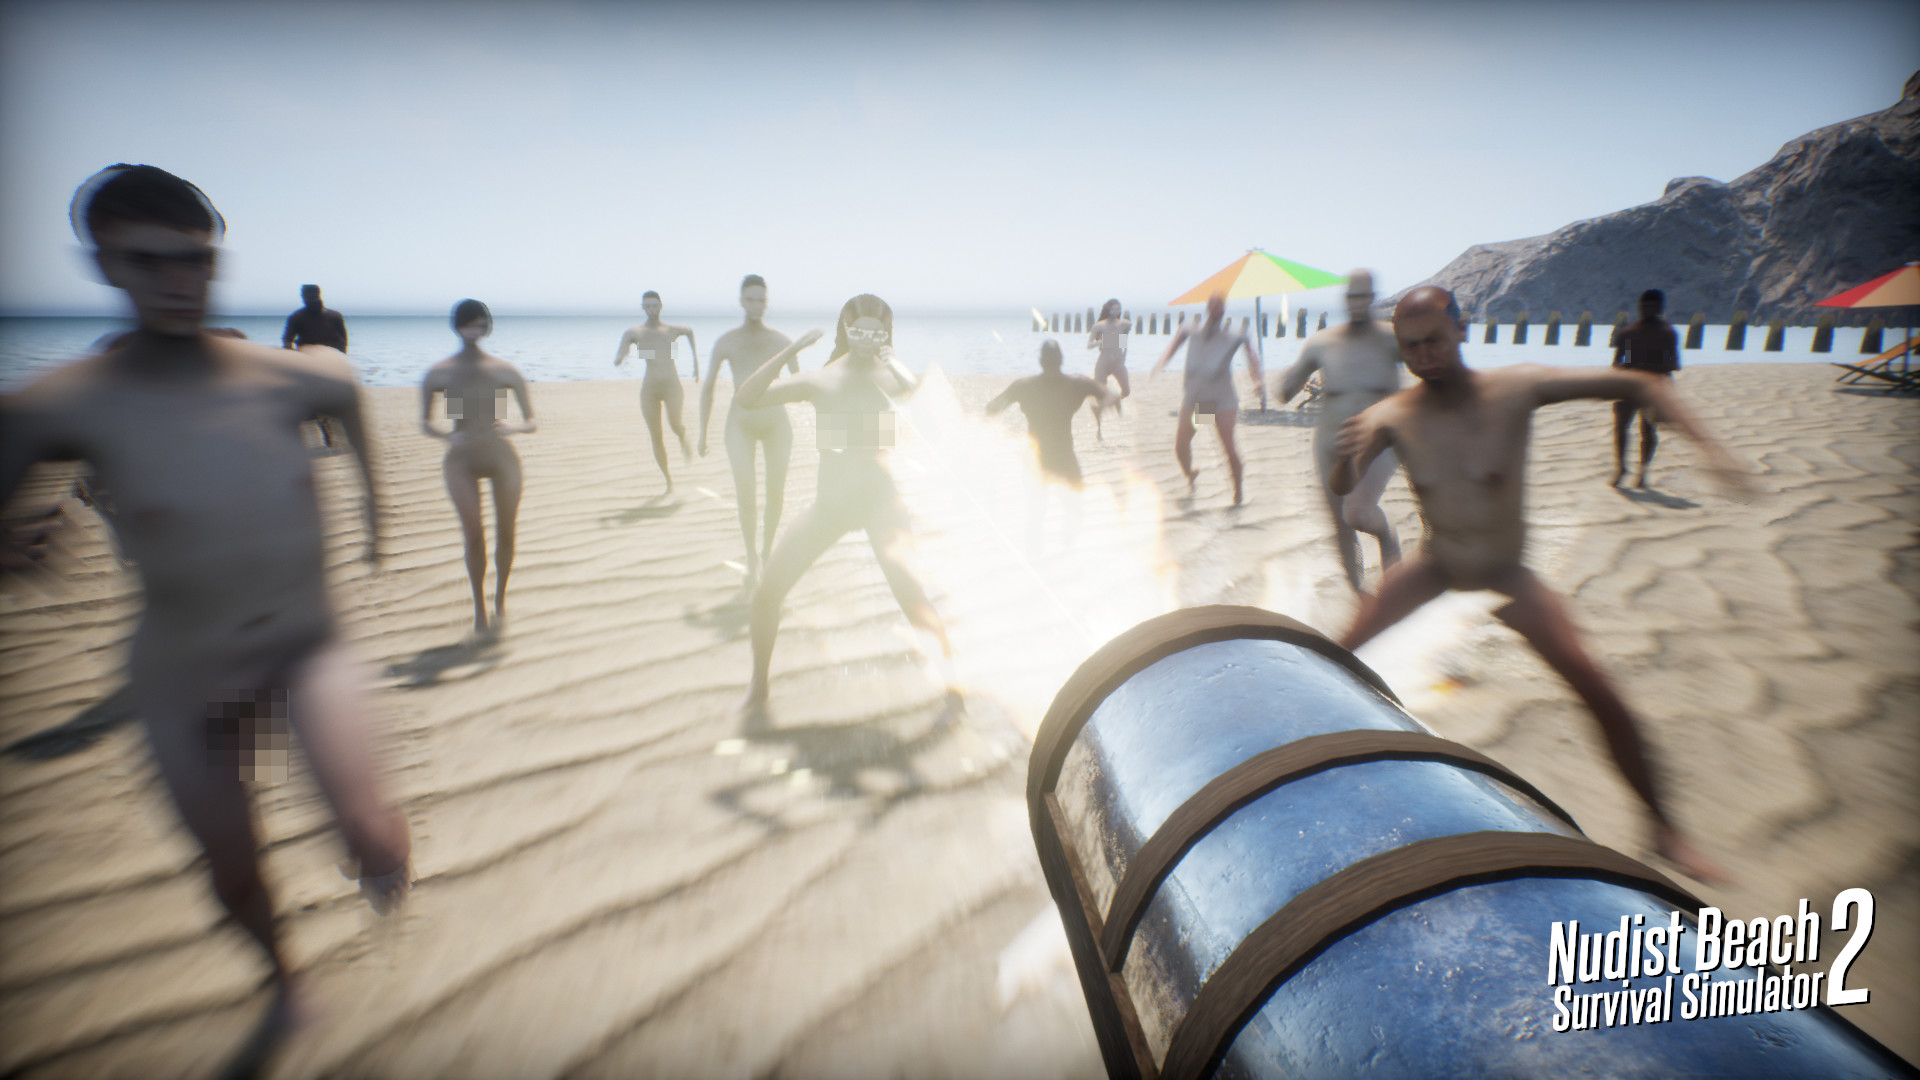 Nudist Beach Survival Simulator 2 On Steam